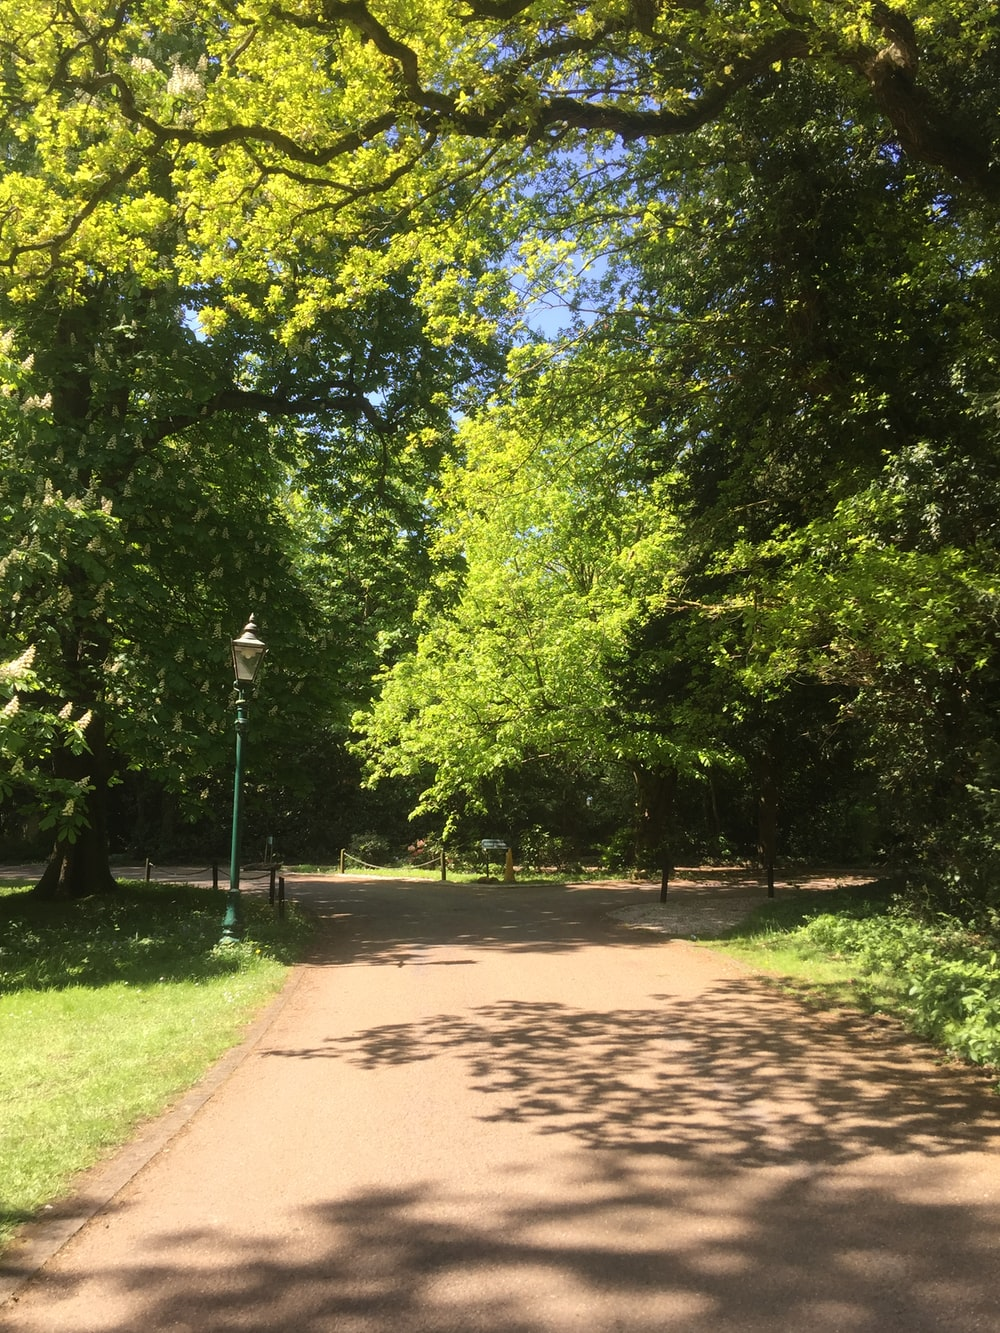 brown concrete pathway between green trees during daytime